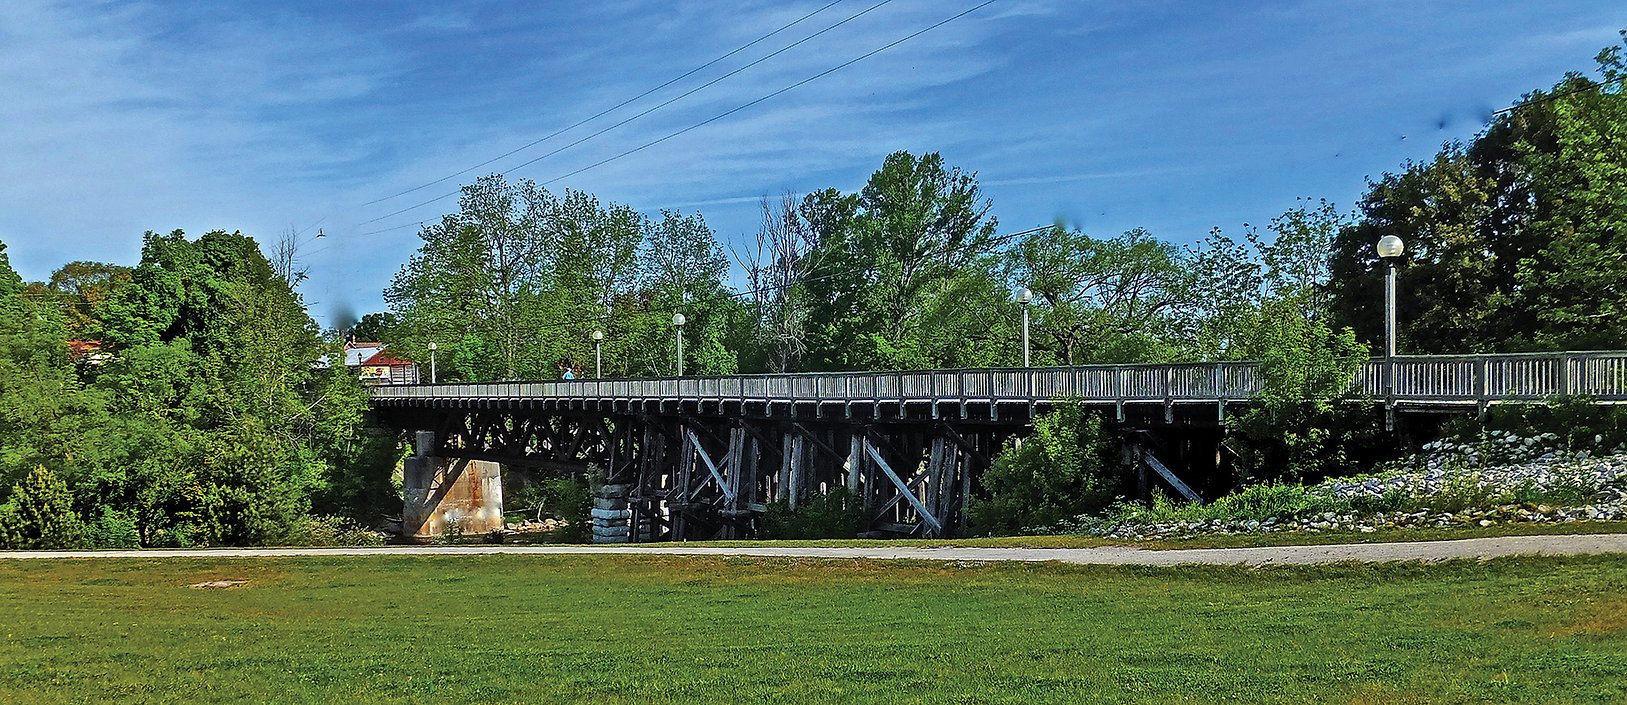 Thornbury trestle bridge